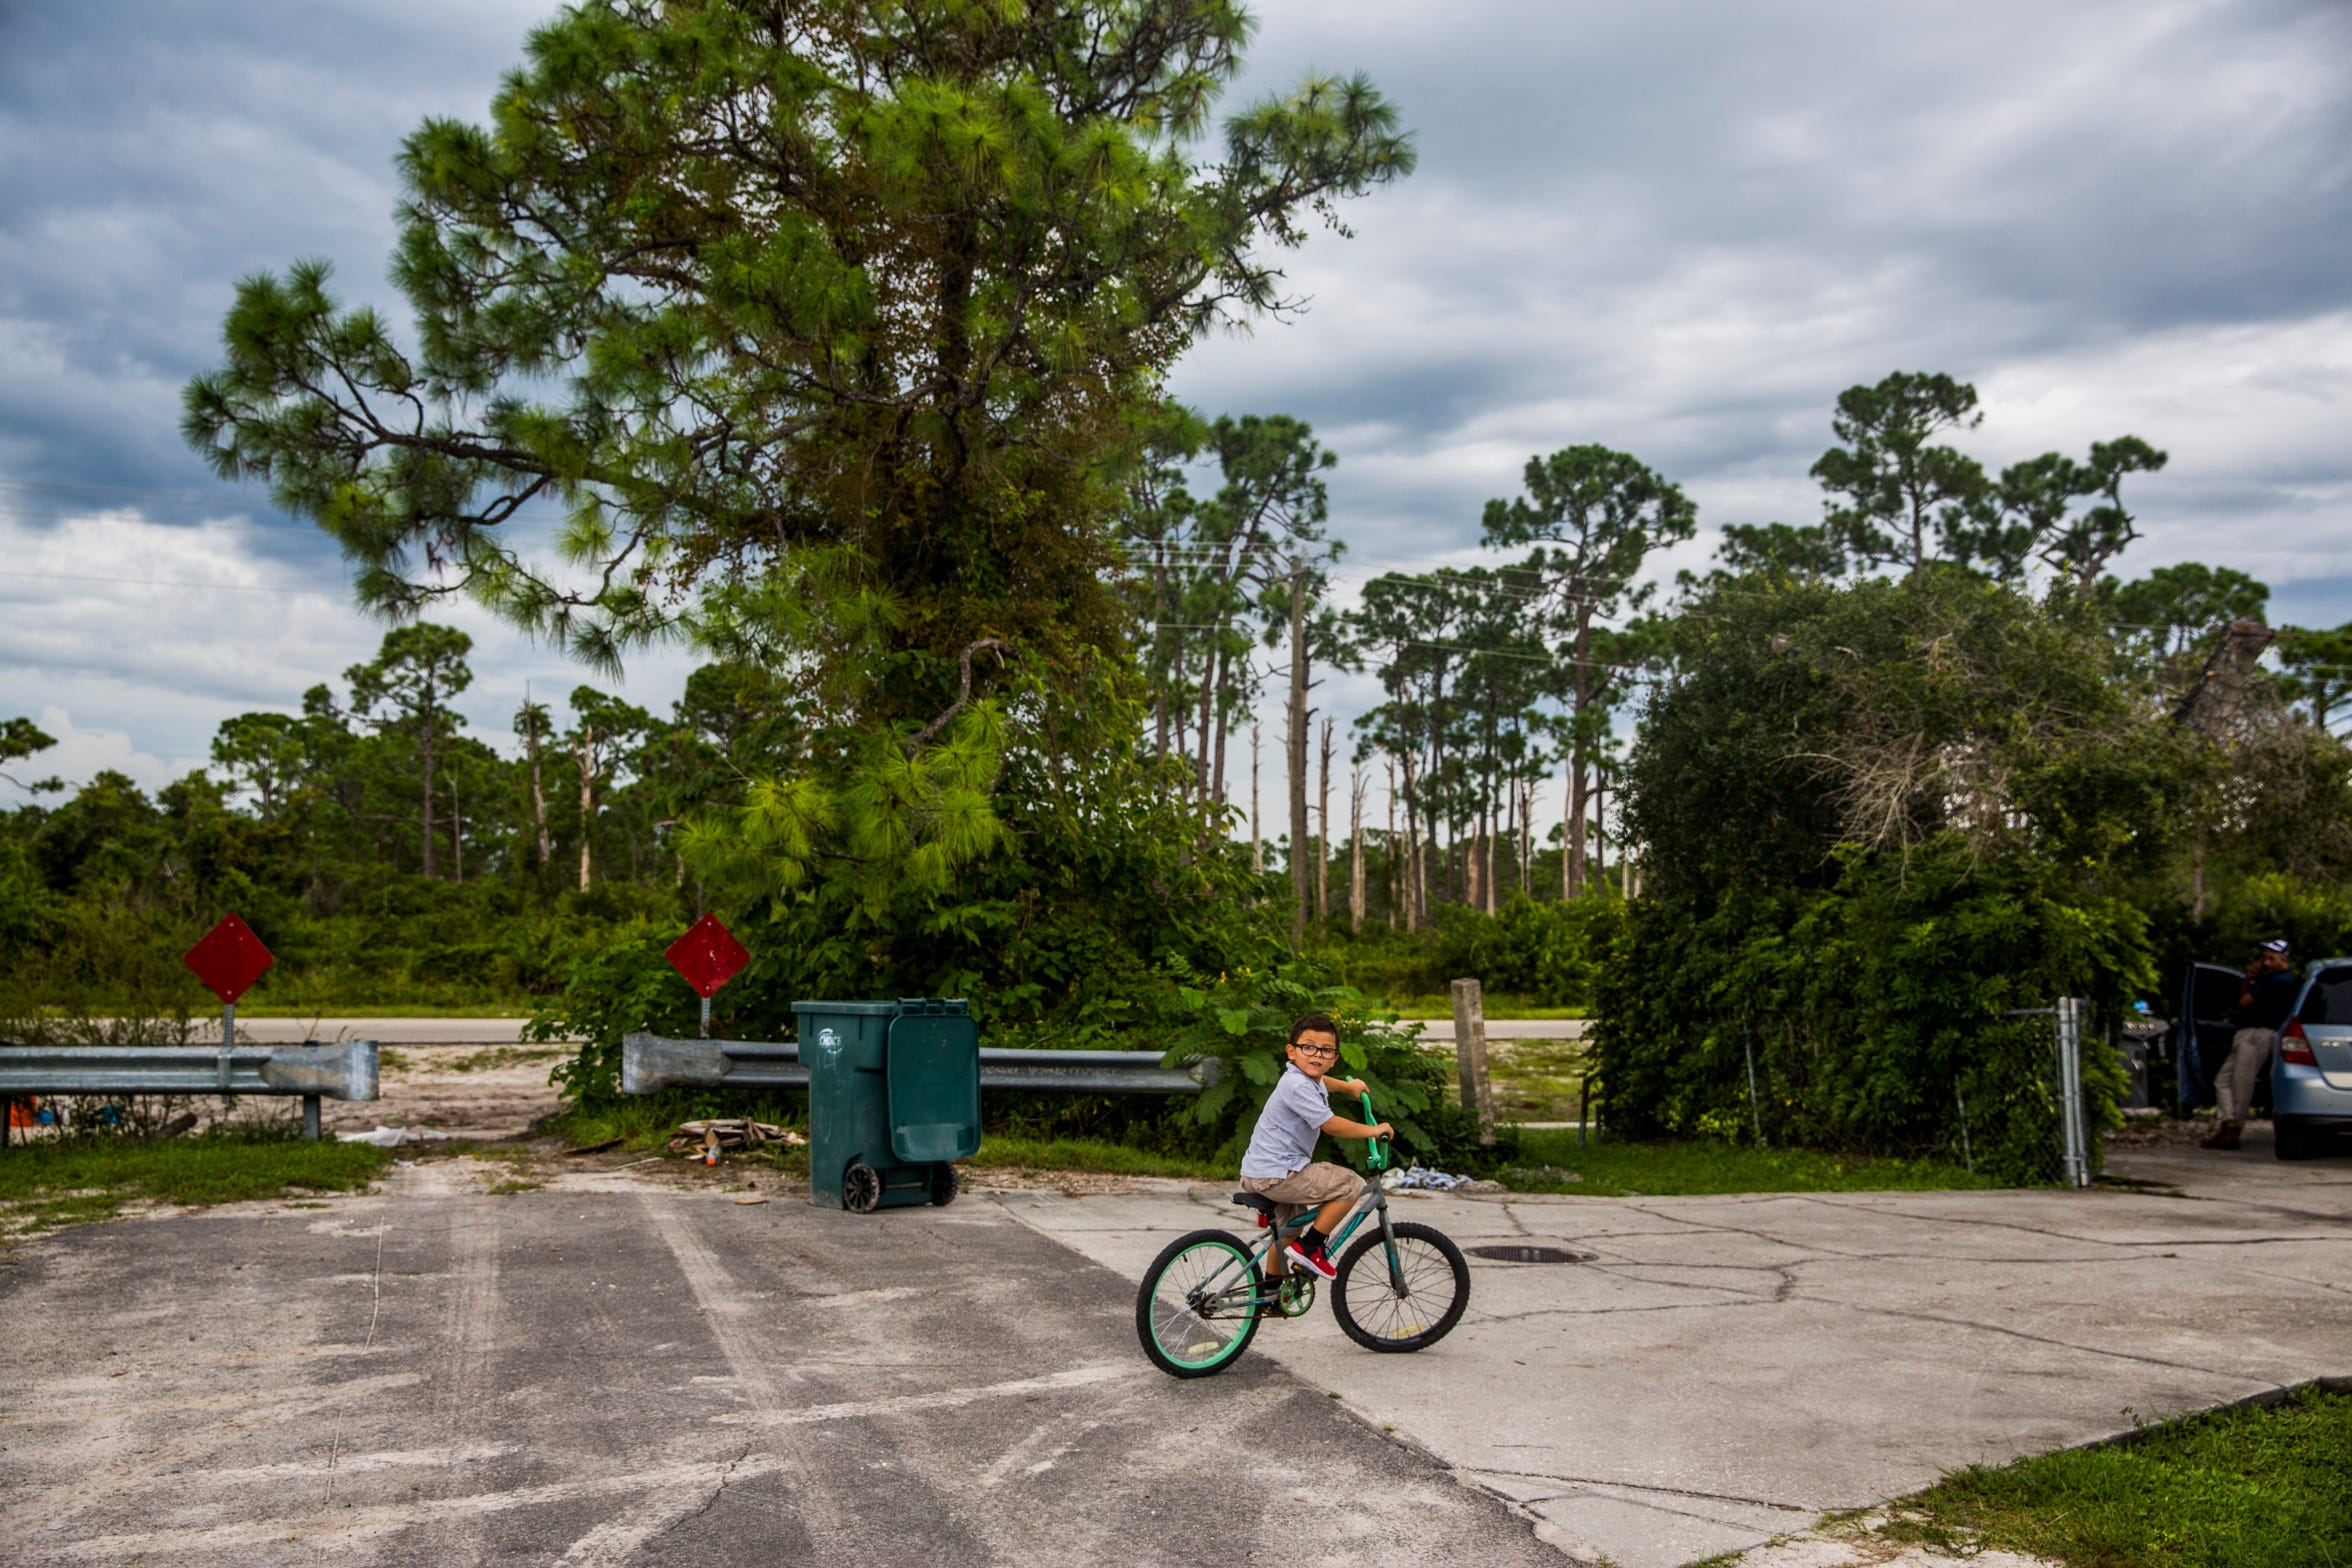 Casey Soto, 6, rides his bike in front of the plot where his Immokalee home used to be on Wednesday, Aug. 22, 2018.